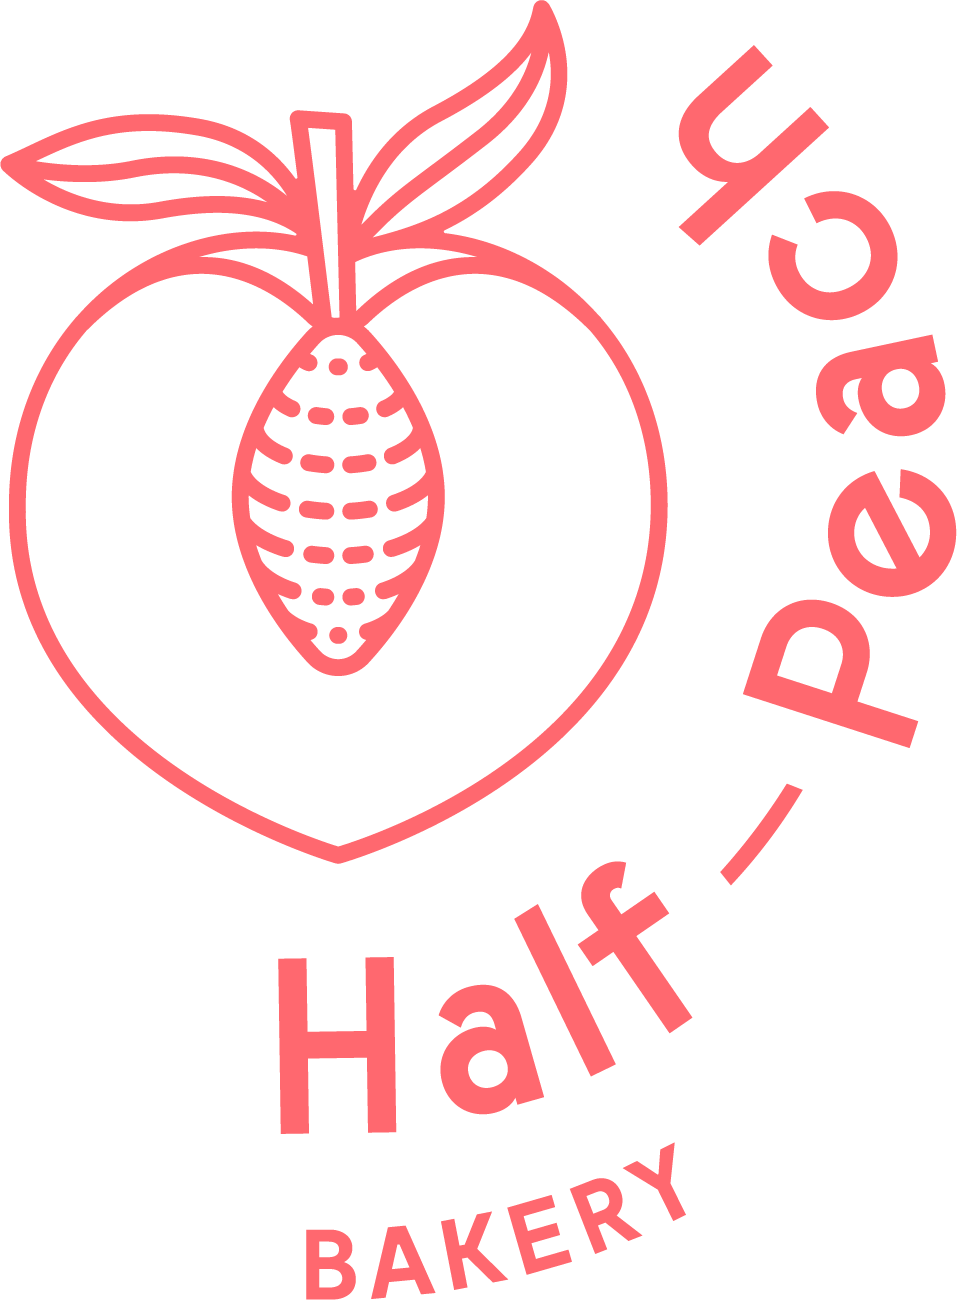 Half-Peach Bakery & Cafe